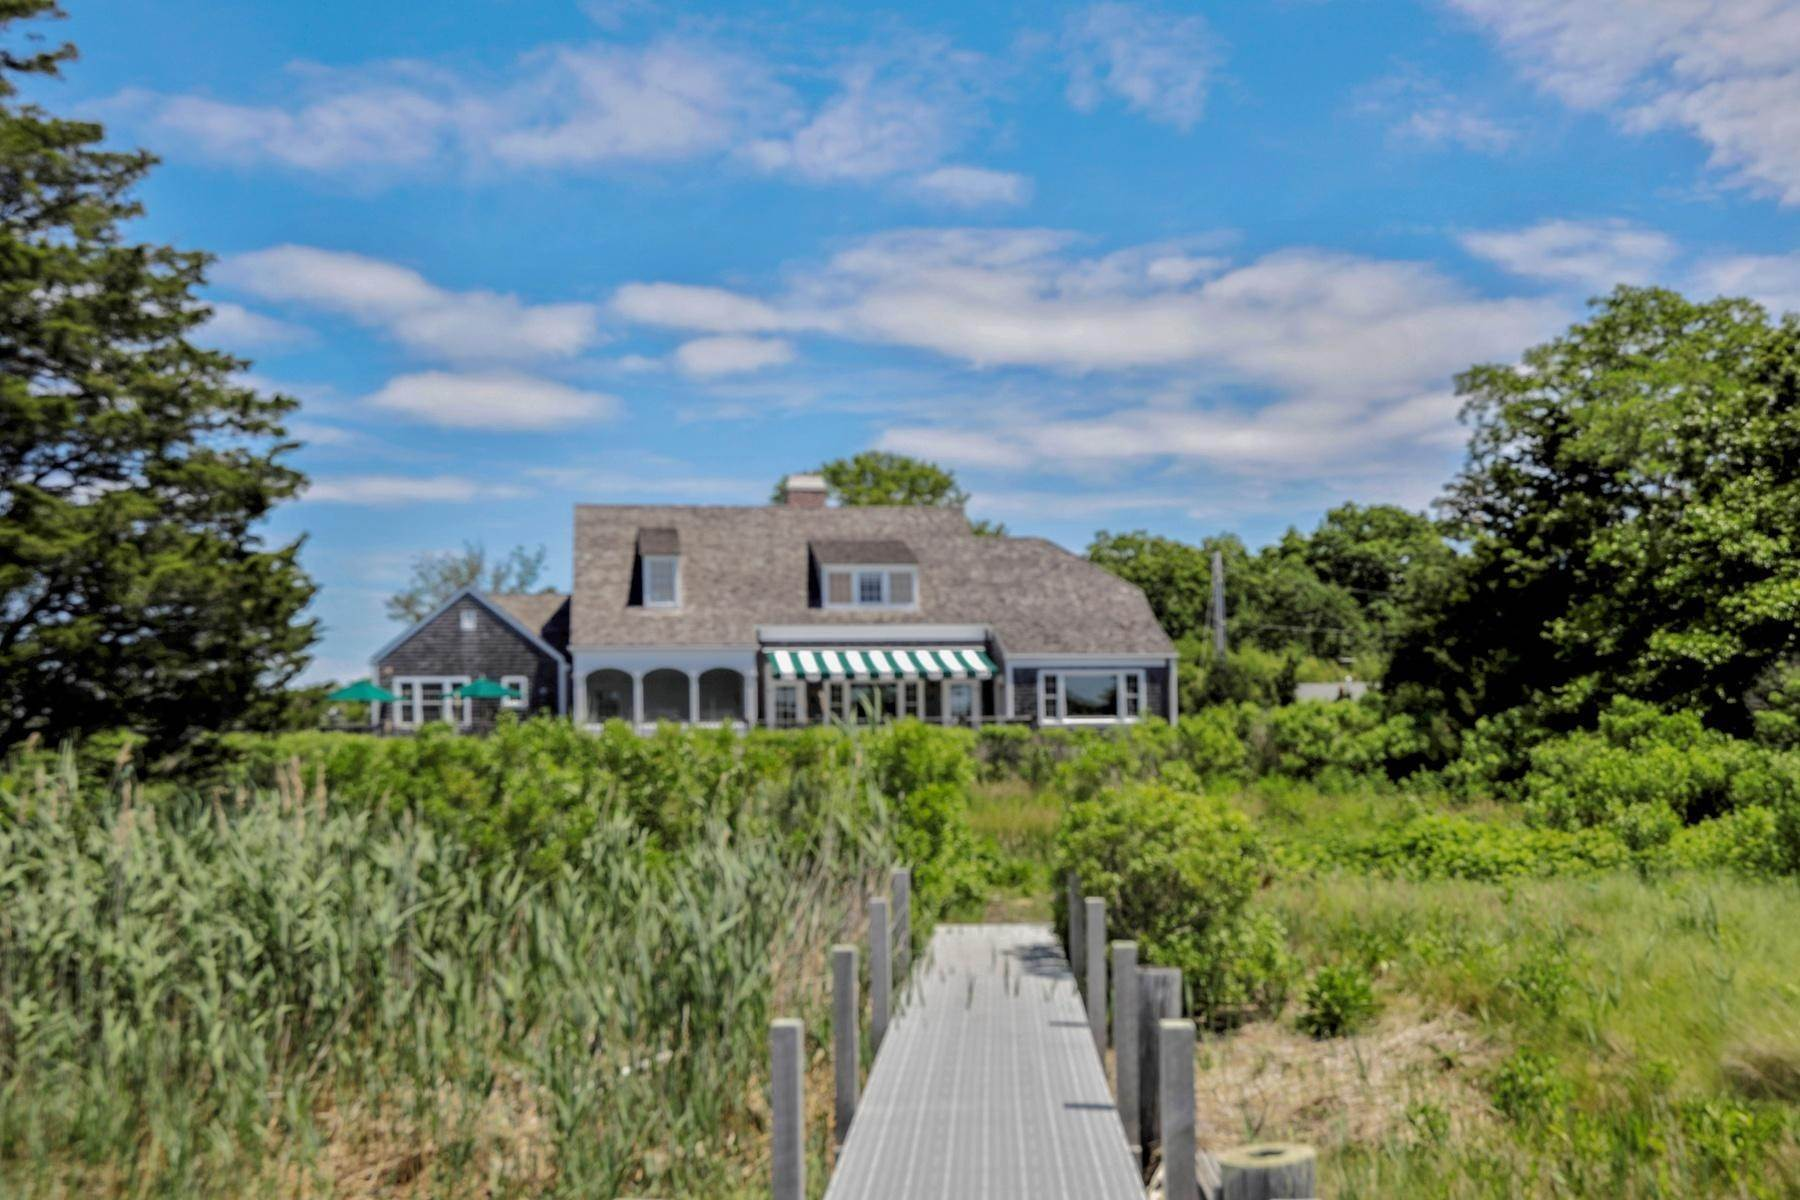 Single Family Home at Bullhead Bay Front, New Construction Southampton, NY 11968